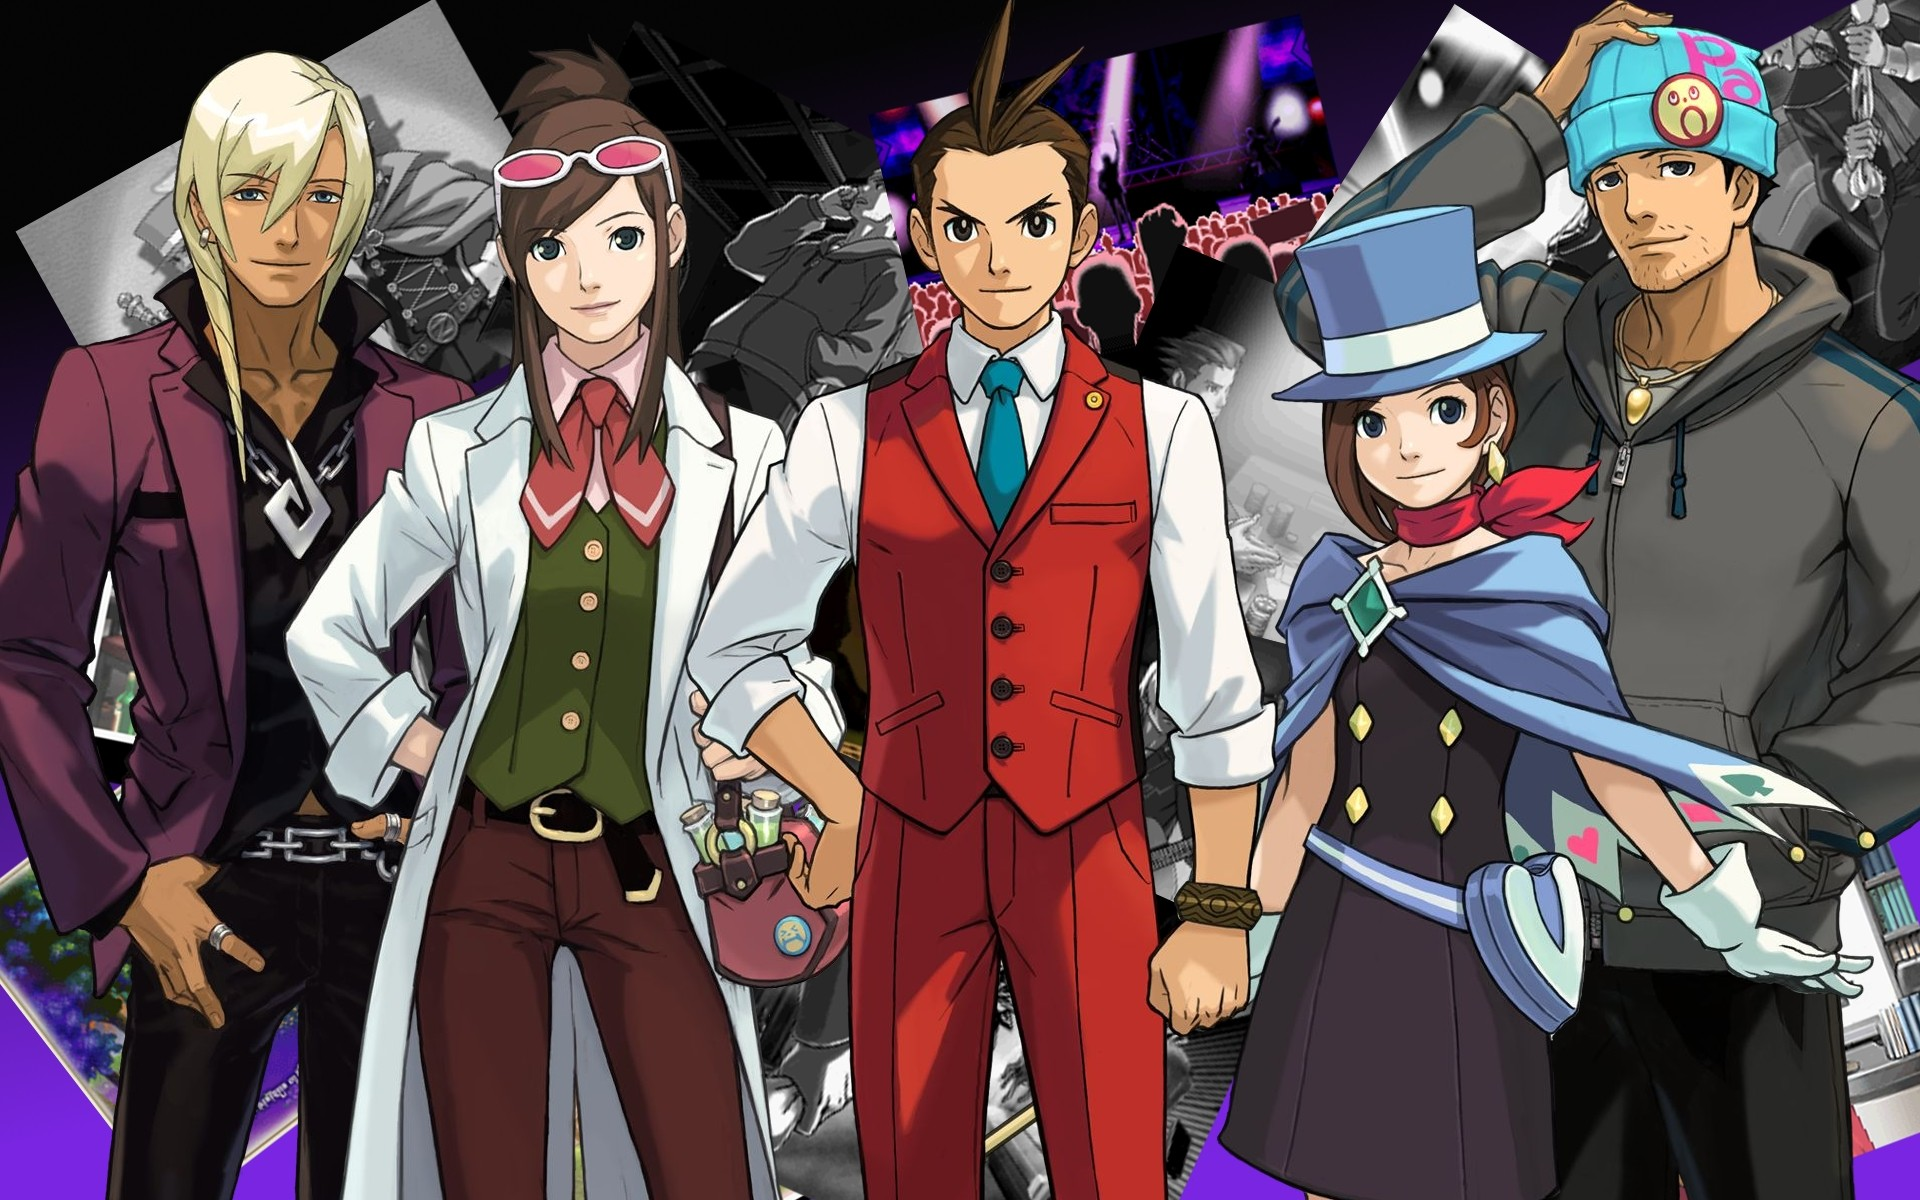 1920x1200 Apollo Justice Characters wallpaper - ForWallpaper.com